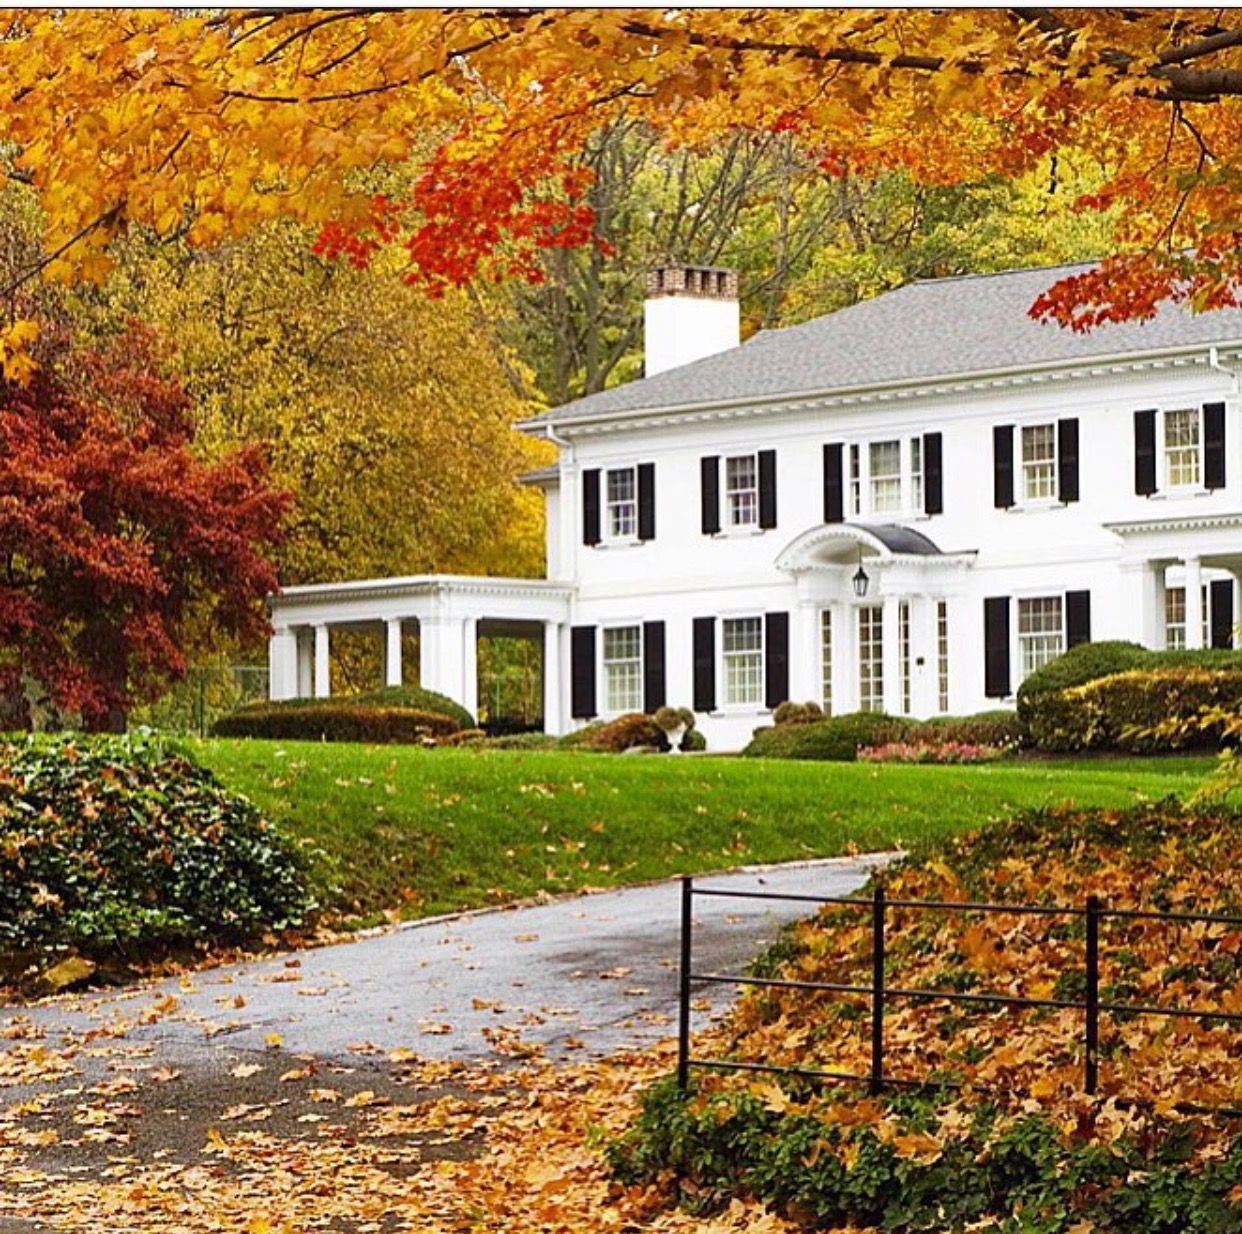 Pin By Ives Hovanessian On House Exterior Autumn Home White House Black Shutters House